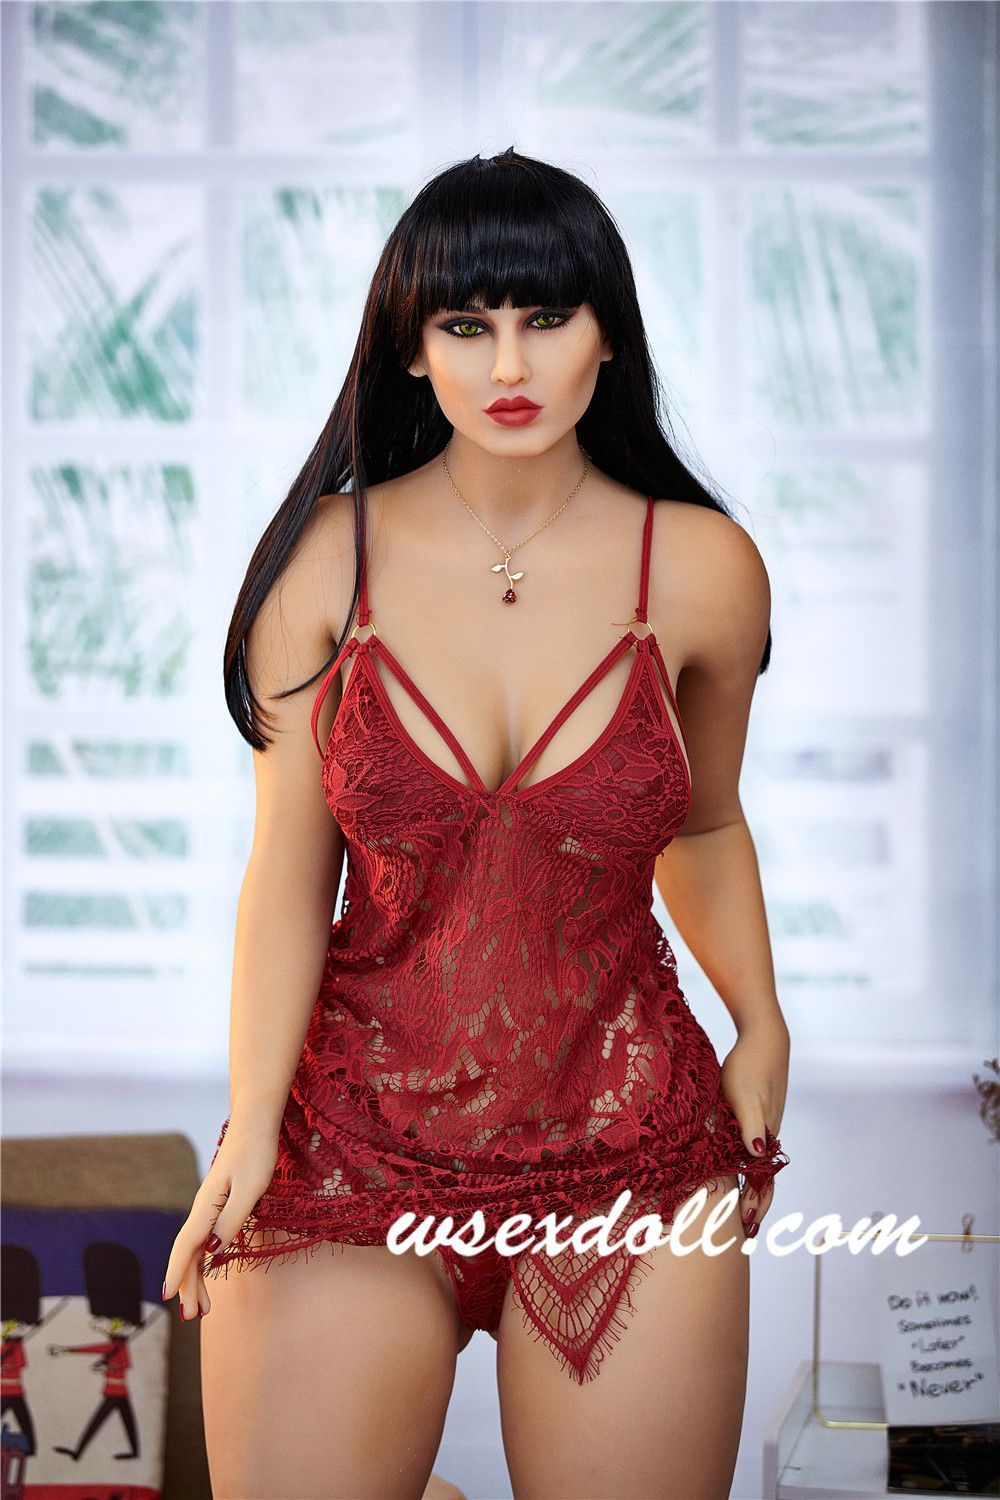 156cm Full Body Realistic Living Sex Doll With Big Breasts And Big Ass